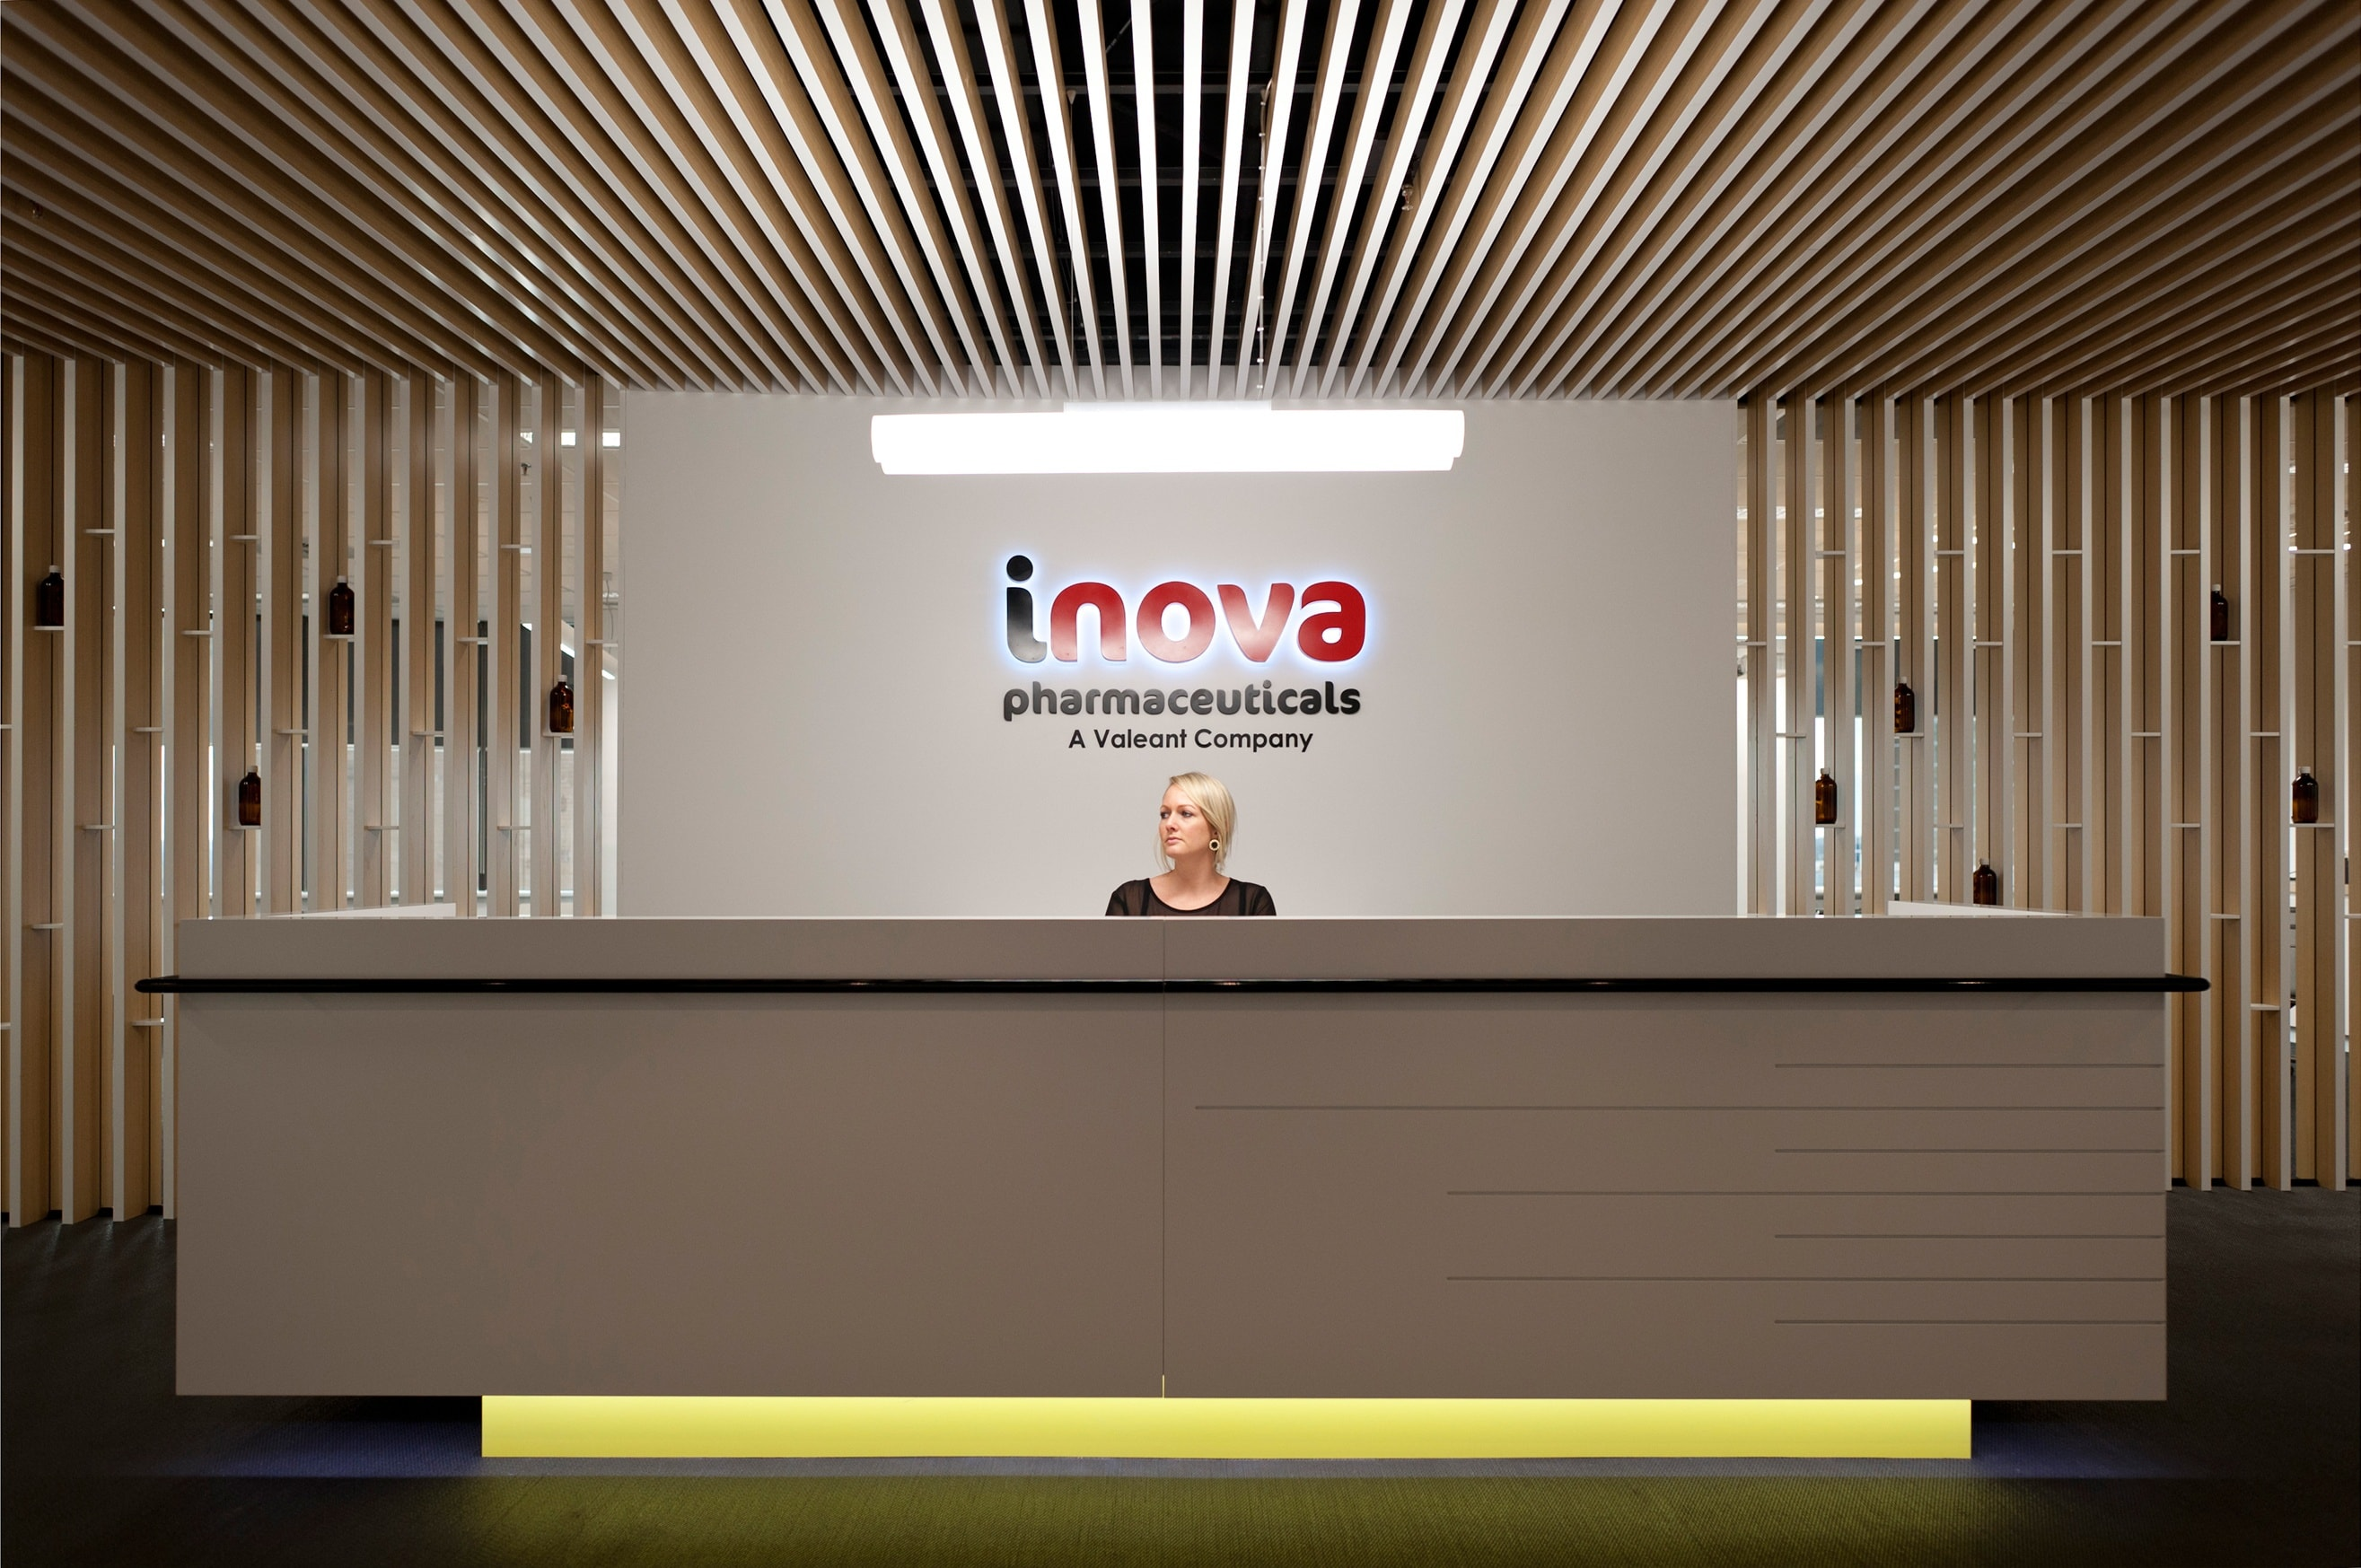 iNova PharmaceuticalsTenant Representation, Interior Design, Project & Construction Management Project Image 1 by PCG